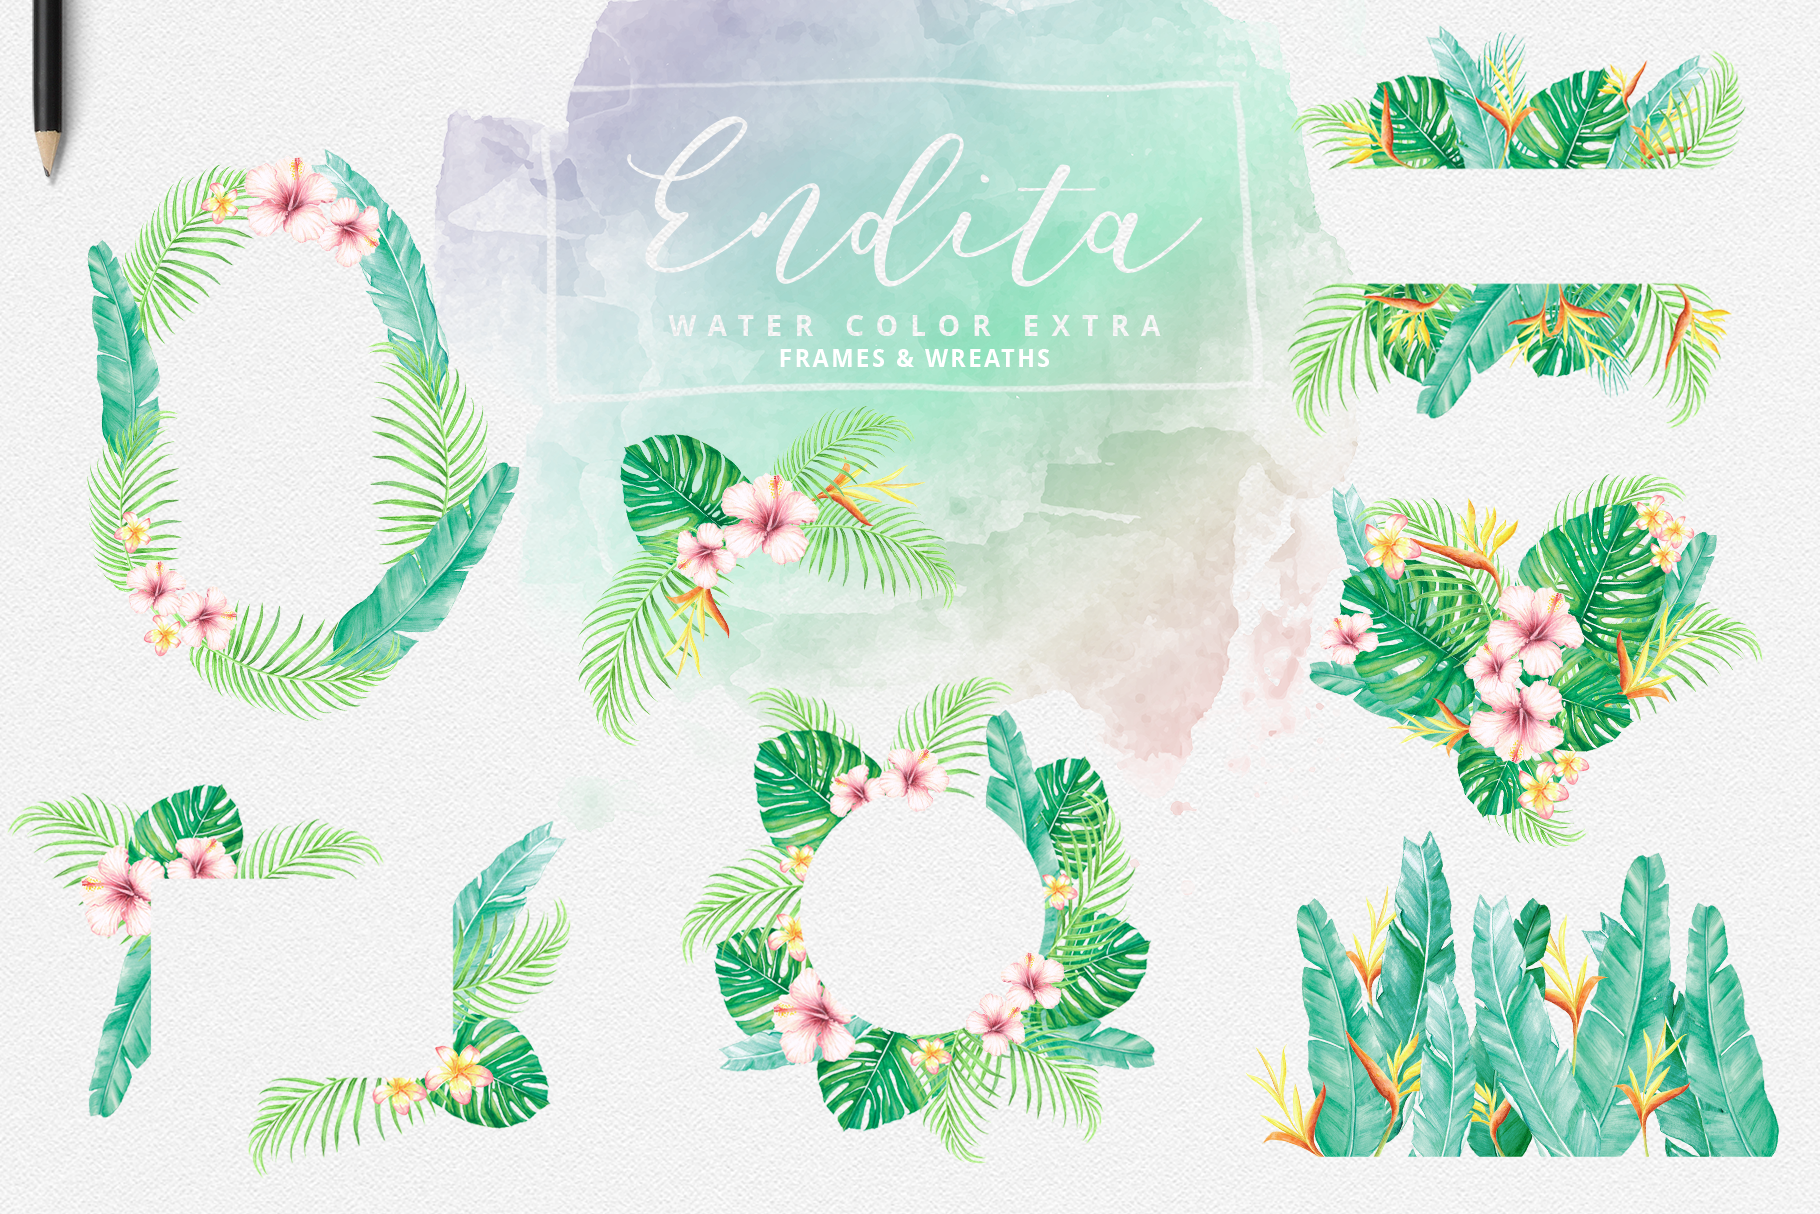 Endita Handwritten Font and Extras example image 11